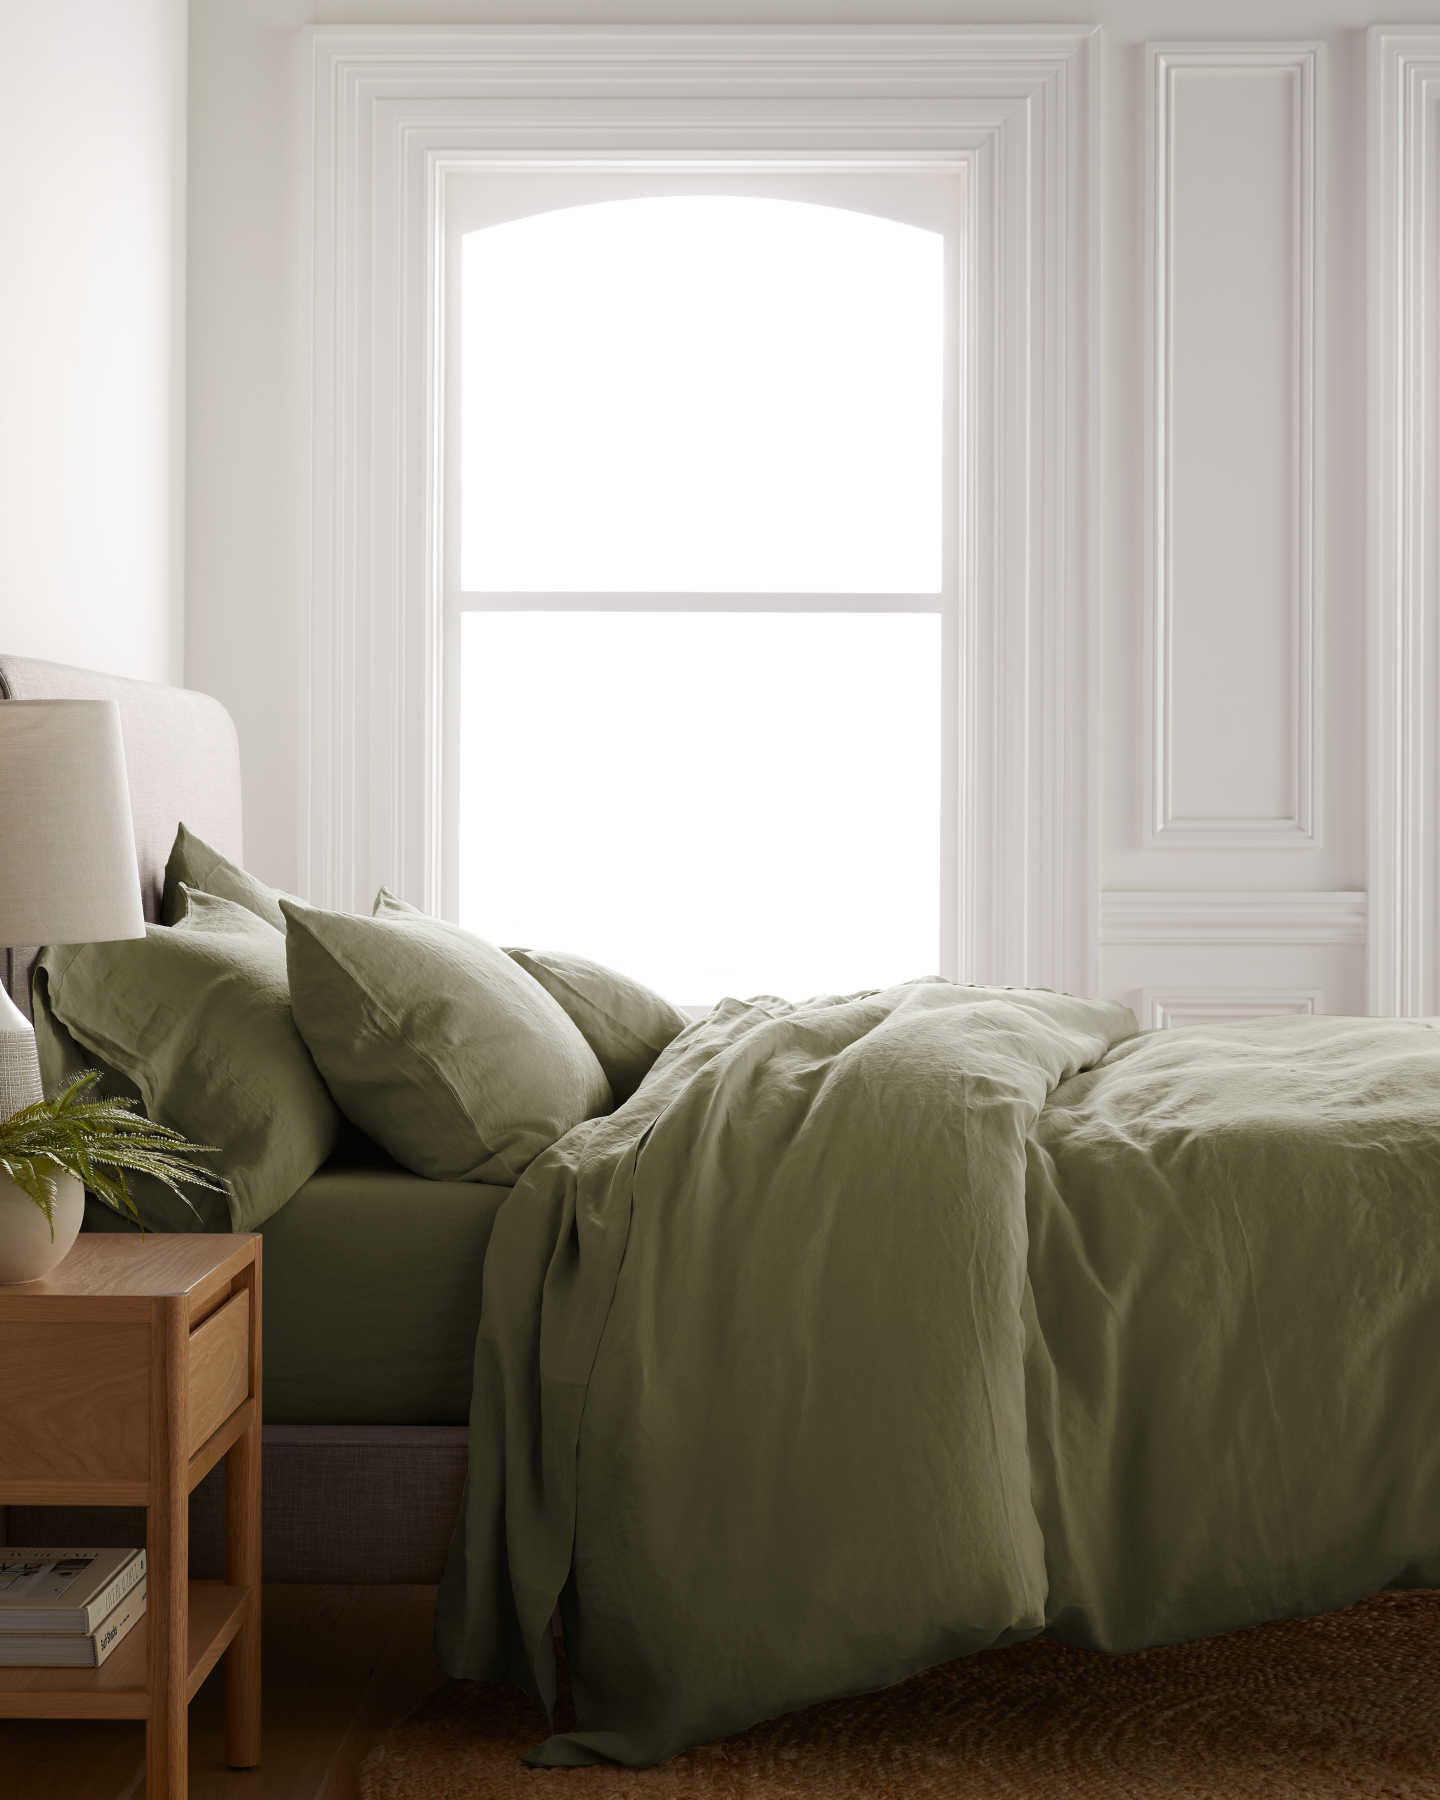 A bed with the duvet set